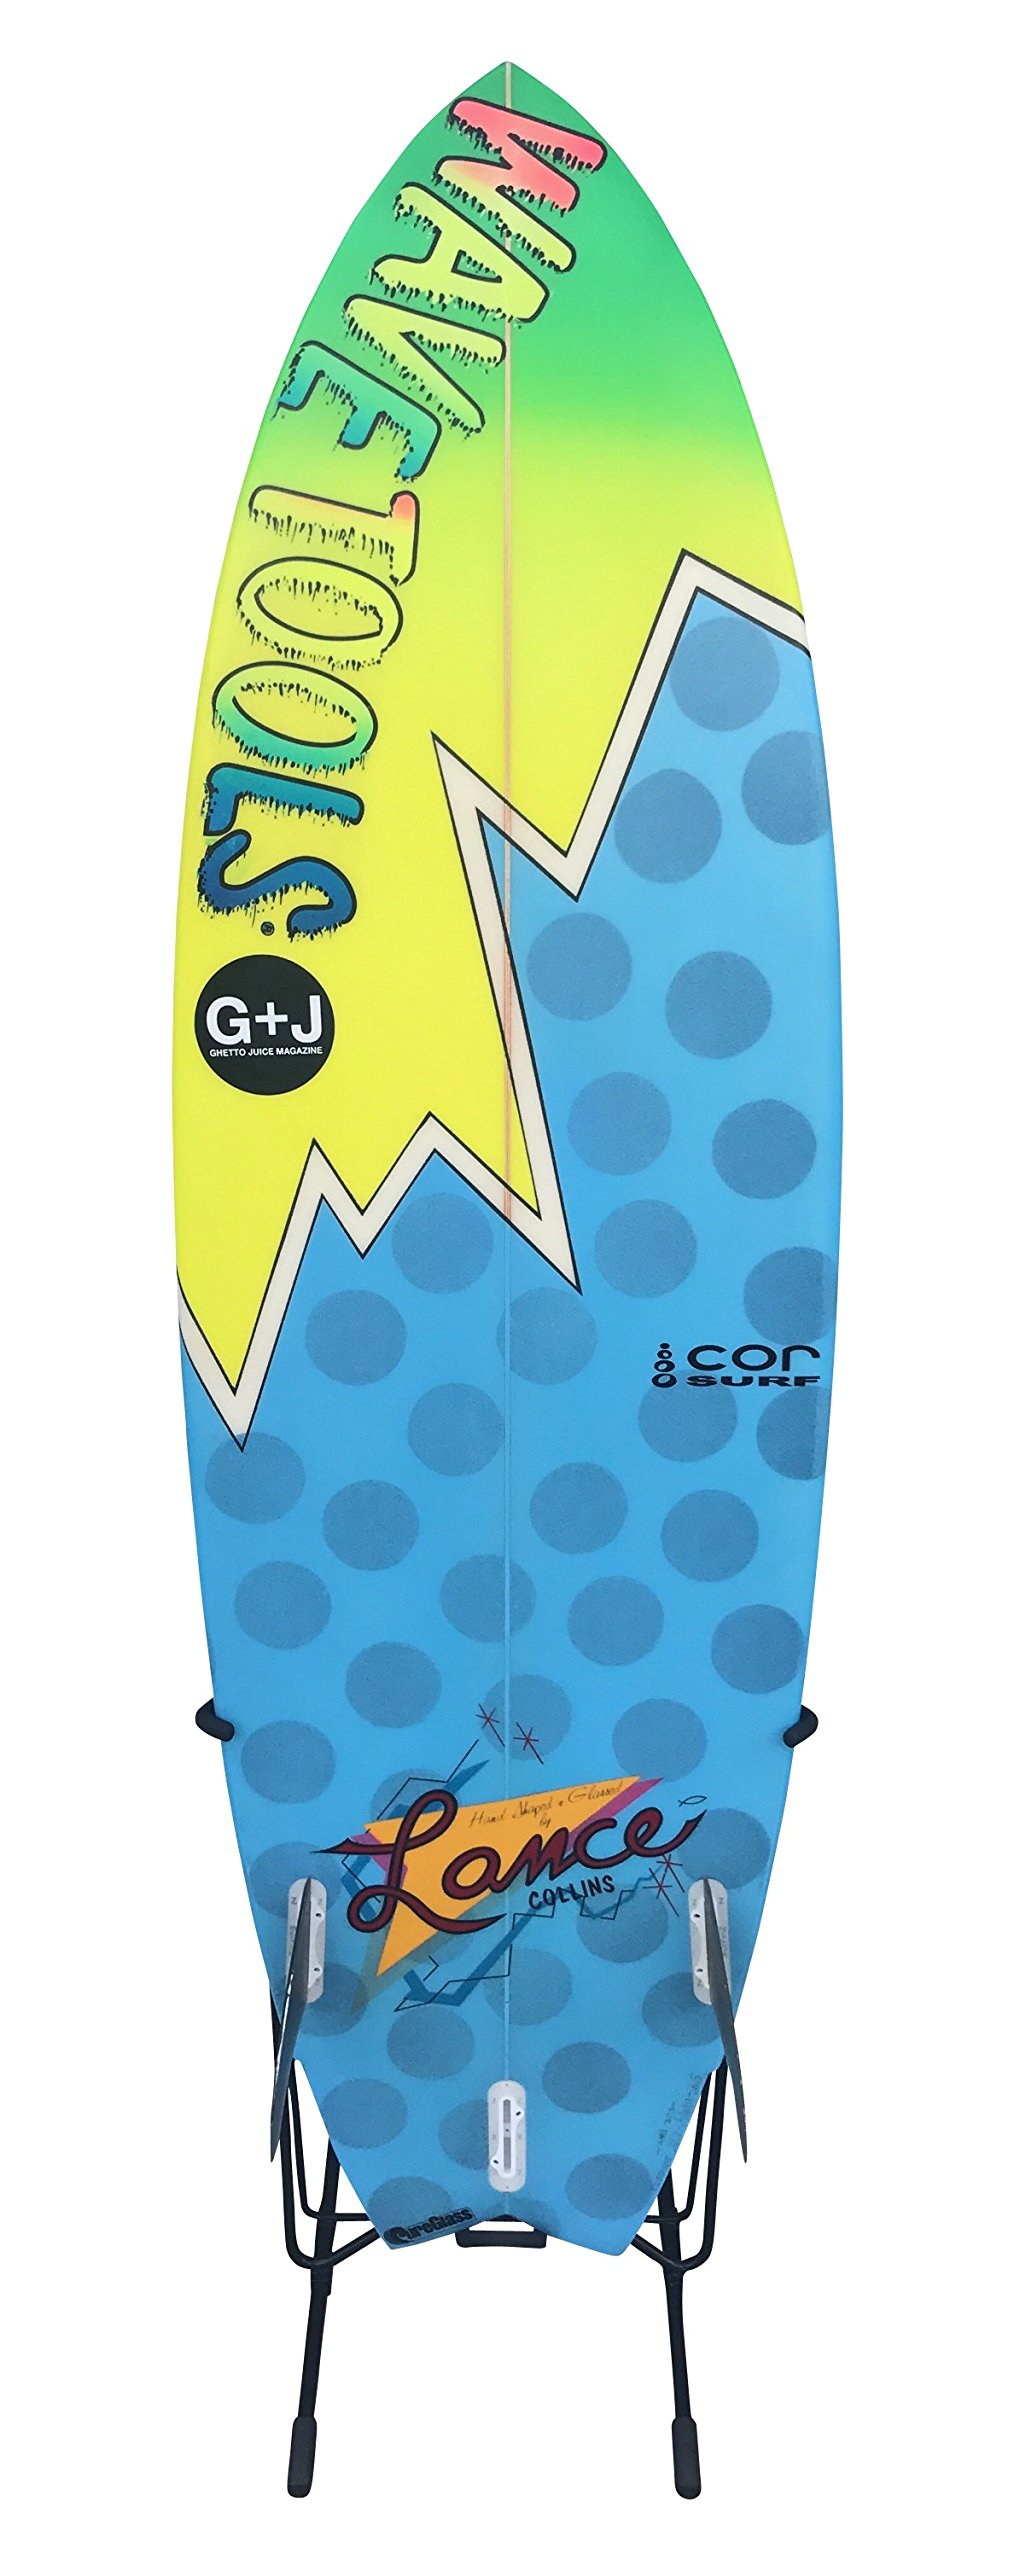 Cor Surf Surfboard Stand   Works with Shortboards Longboards   No Center Fin Needed